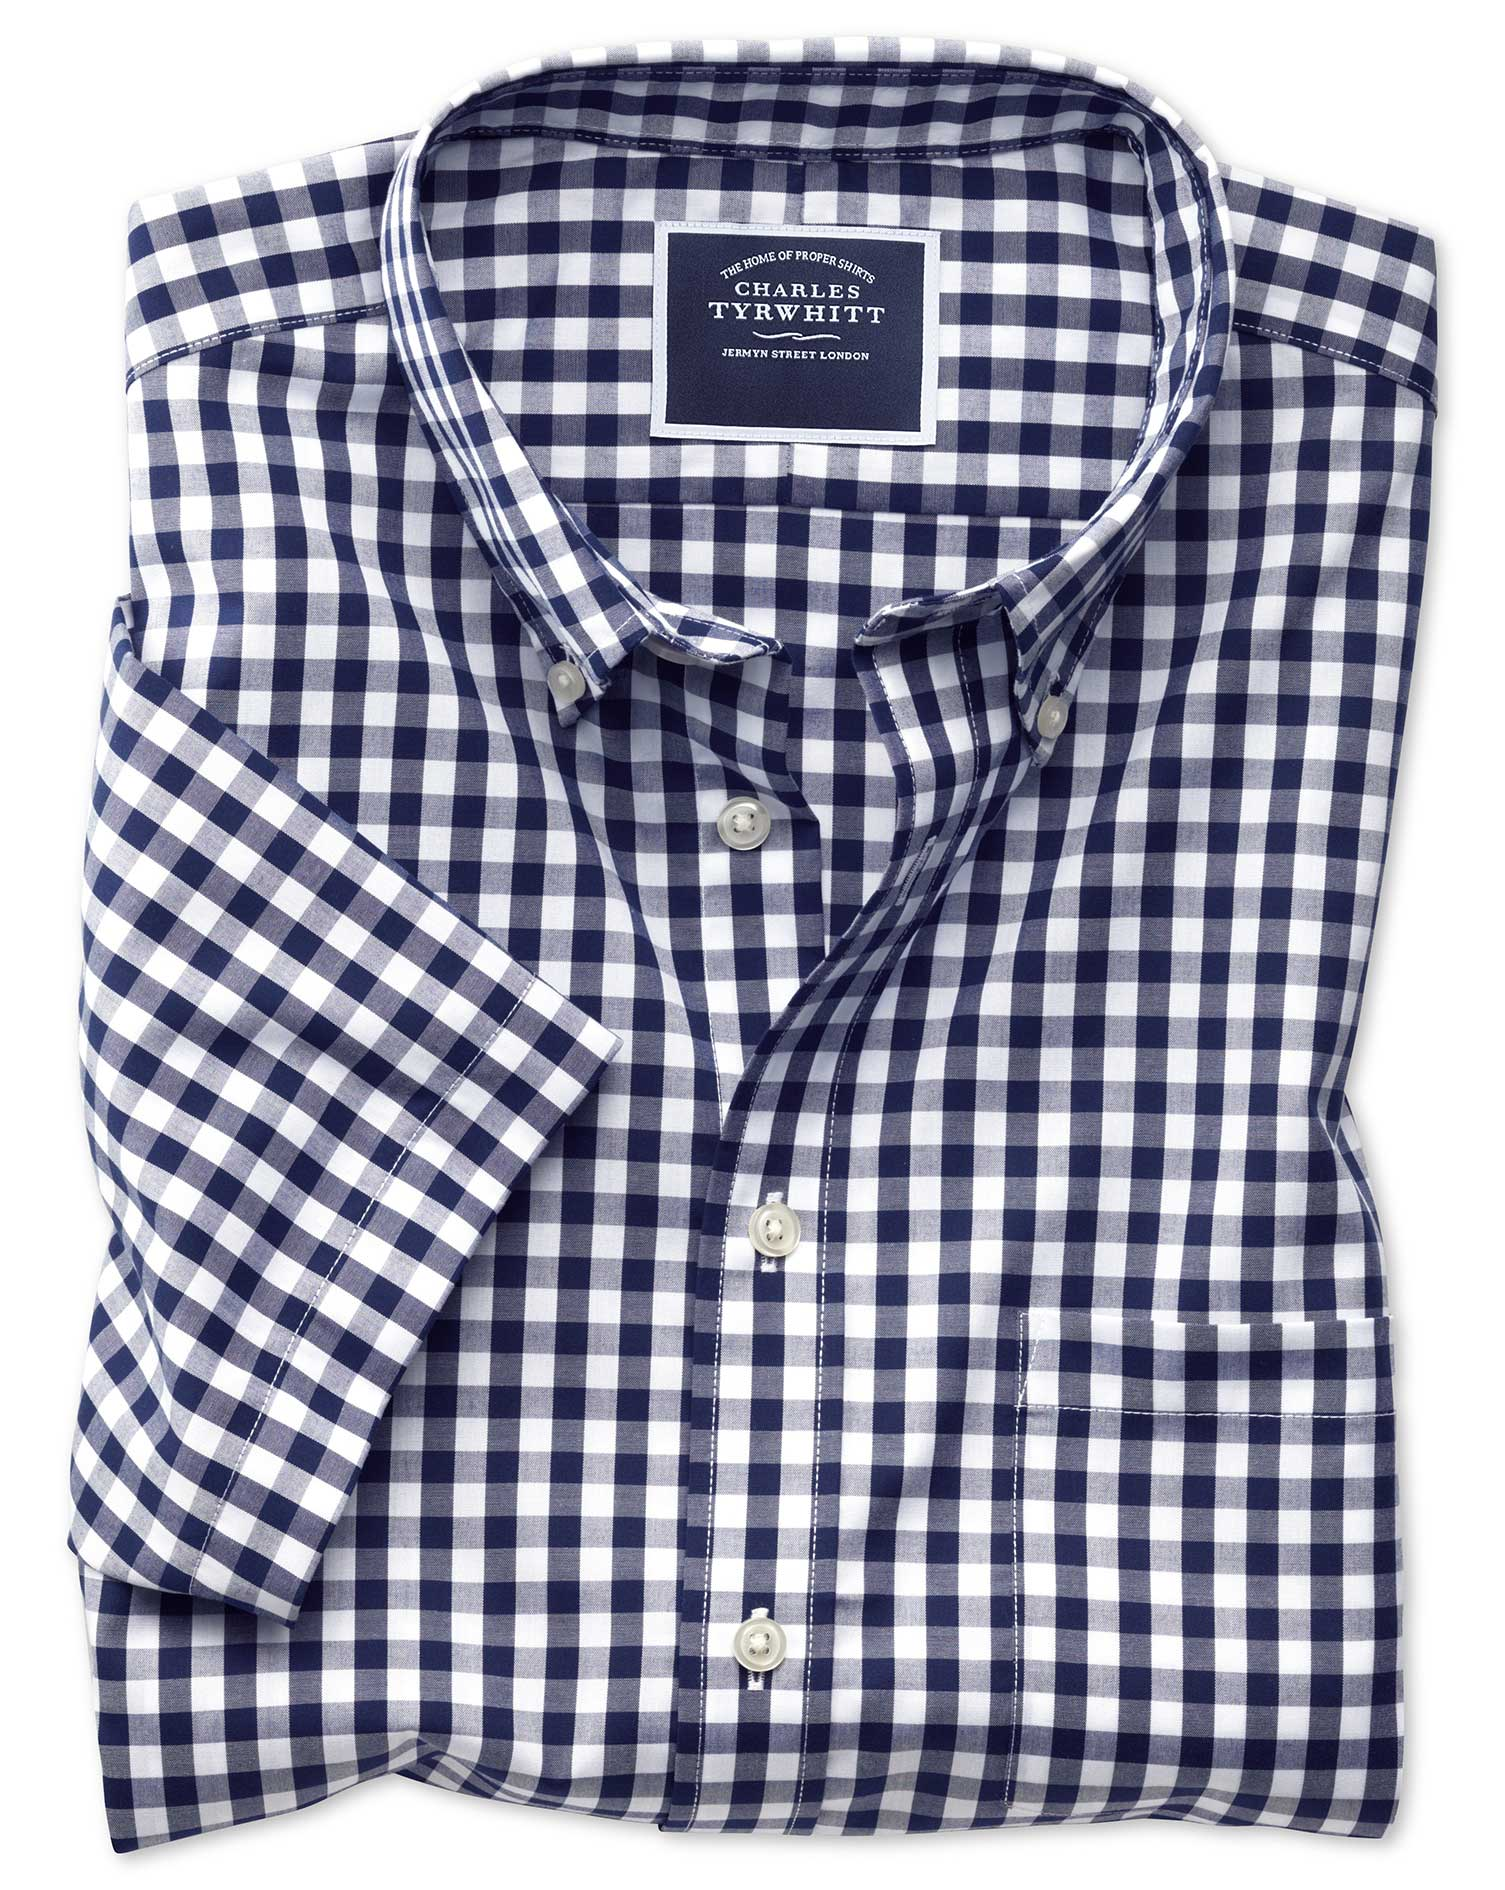 Slim Fit Button-Down Non-Iron Poplin Short Sleeve Navy Blue Gingham Cotton Shirt Single Cuff Size XX